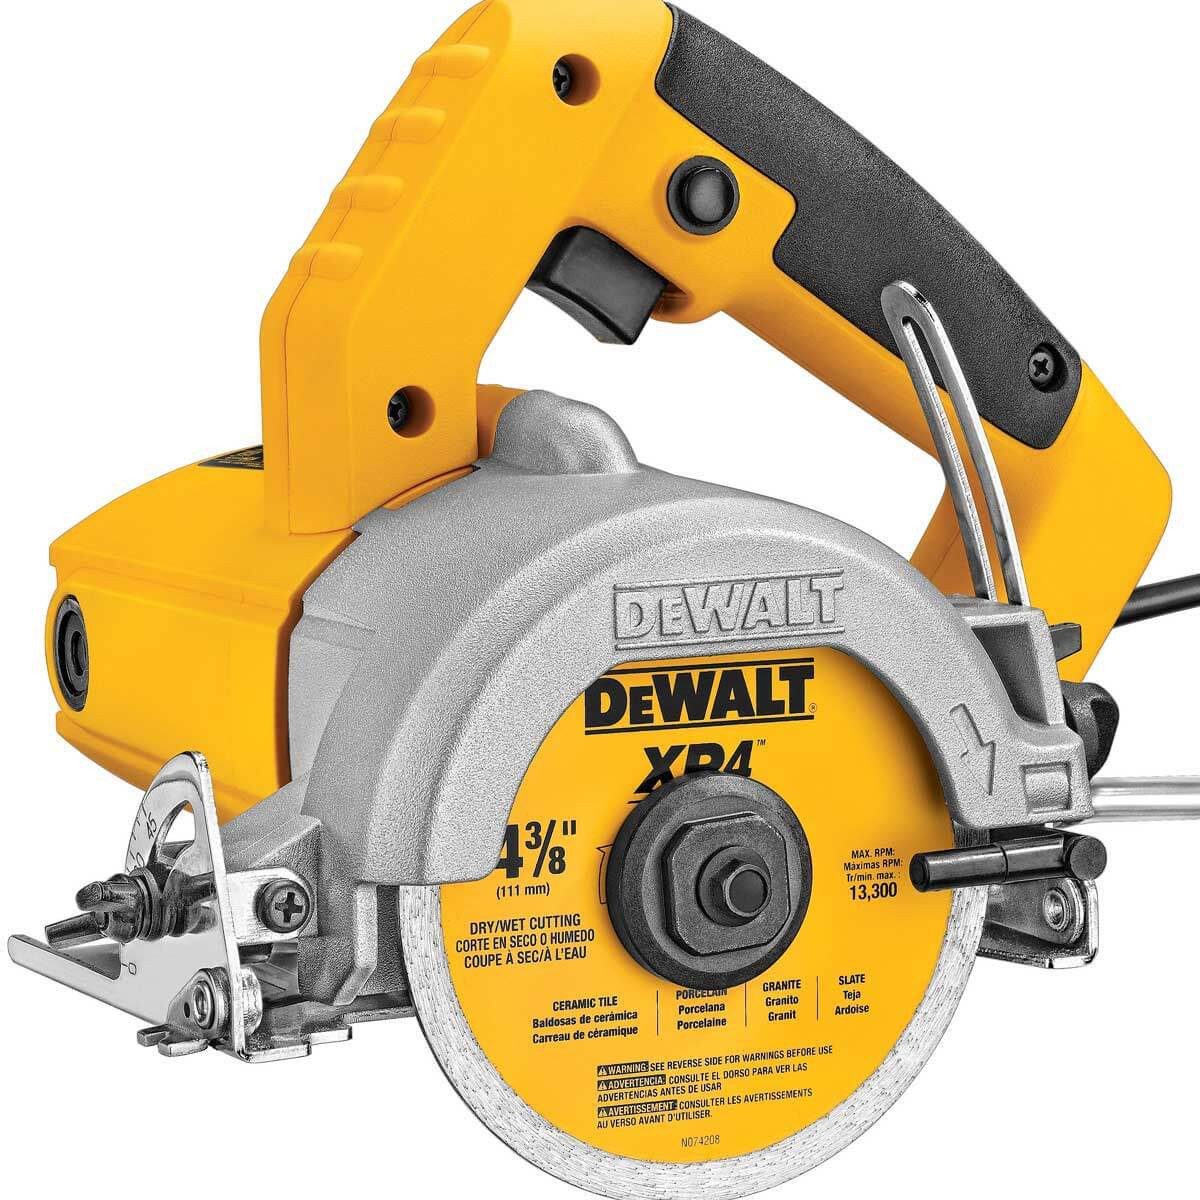 Dewalt DWC860W Heavy-Duty 4-3/8'' Wet/Dry Tile Saw 2